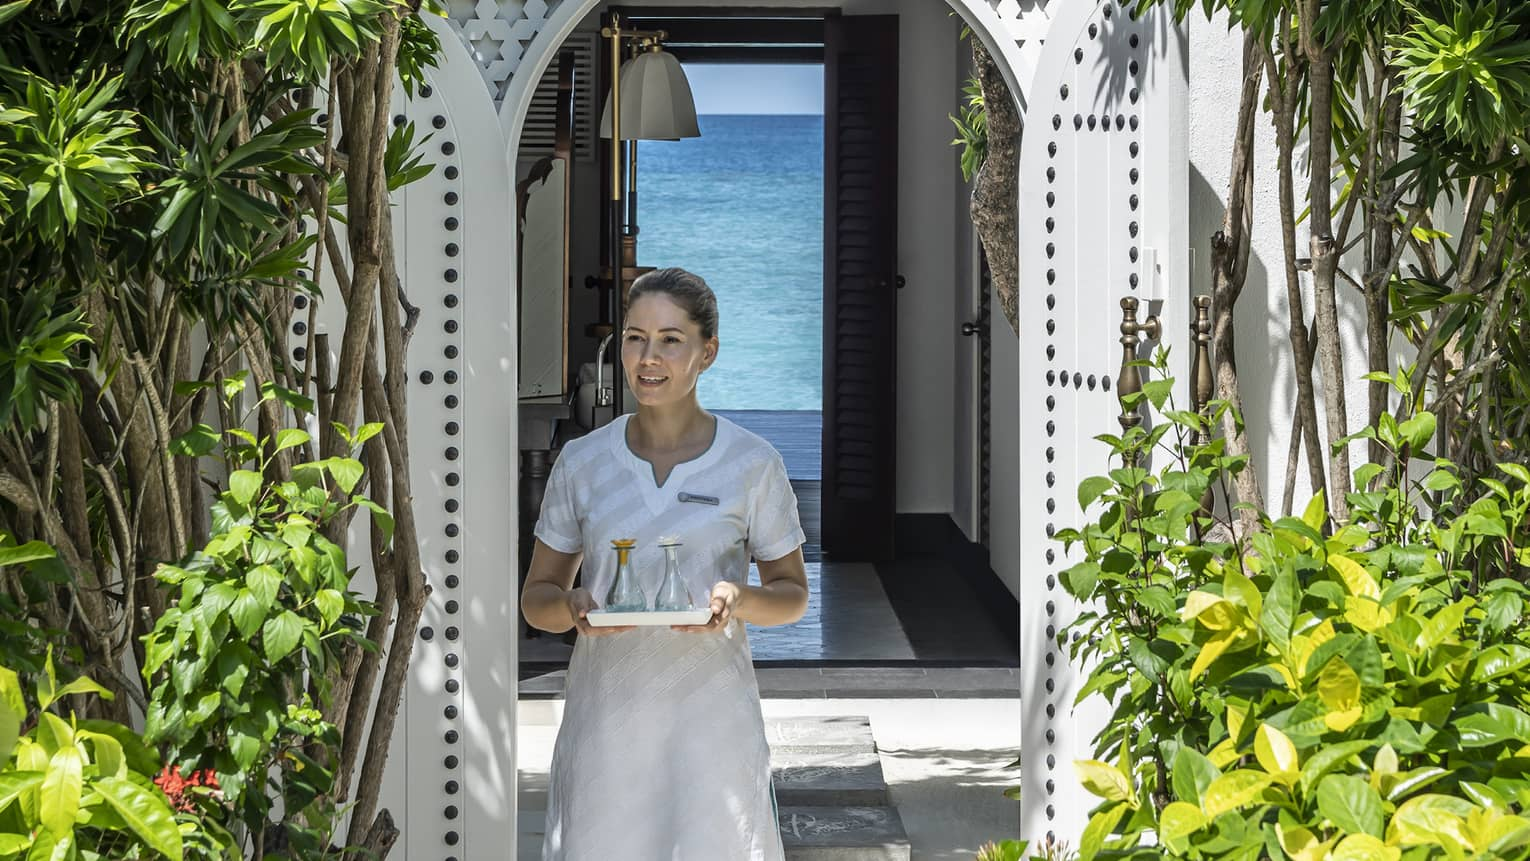 A four seasons spa member carries a tray of food through a shrubbery lined archway